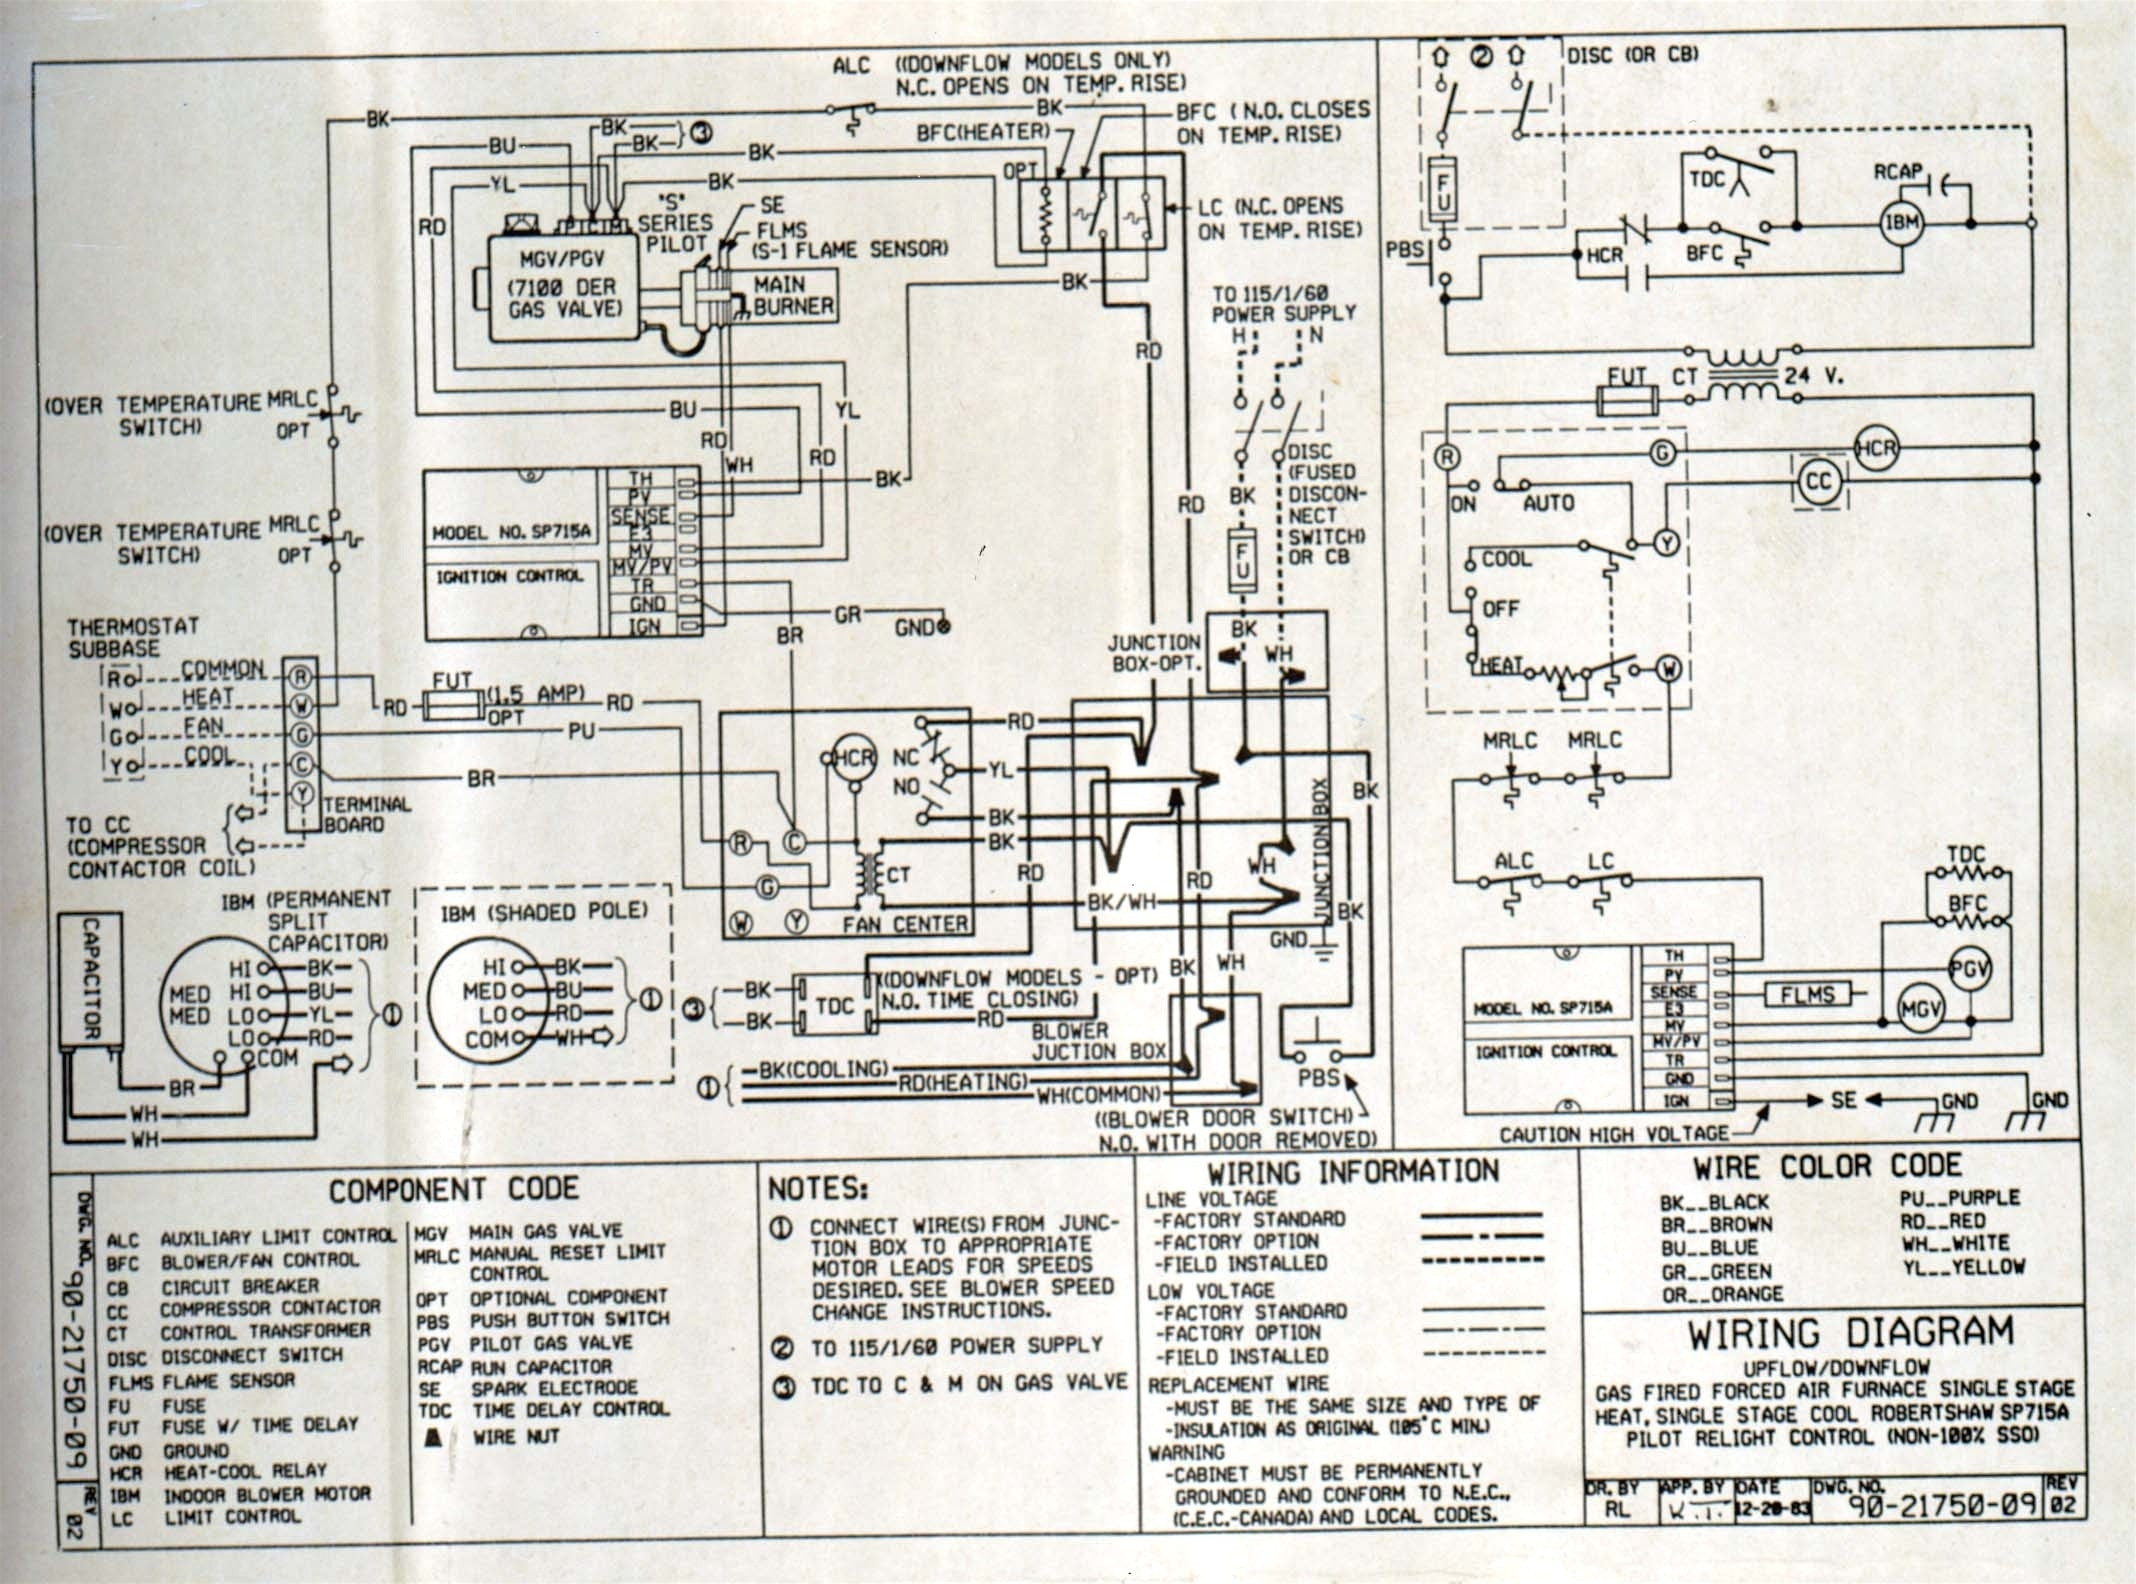 rheem air handler wiring schematic Download-ameristar air handler wiring diagram wire center u2022 rh stevcup me Rheem Air Conditioner Wiring Diagram Coleman Air Conditioner Wiring Diagram 17-h